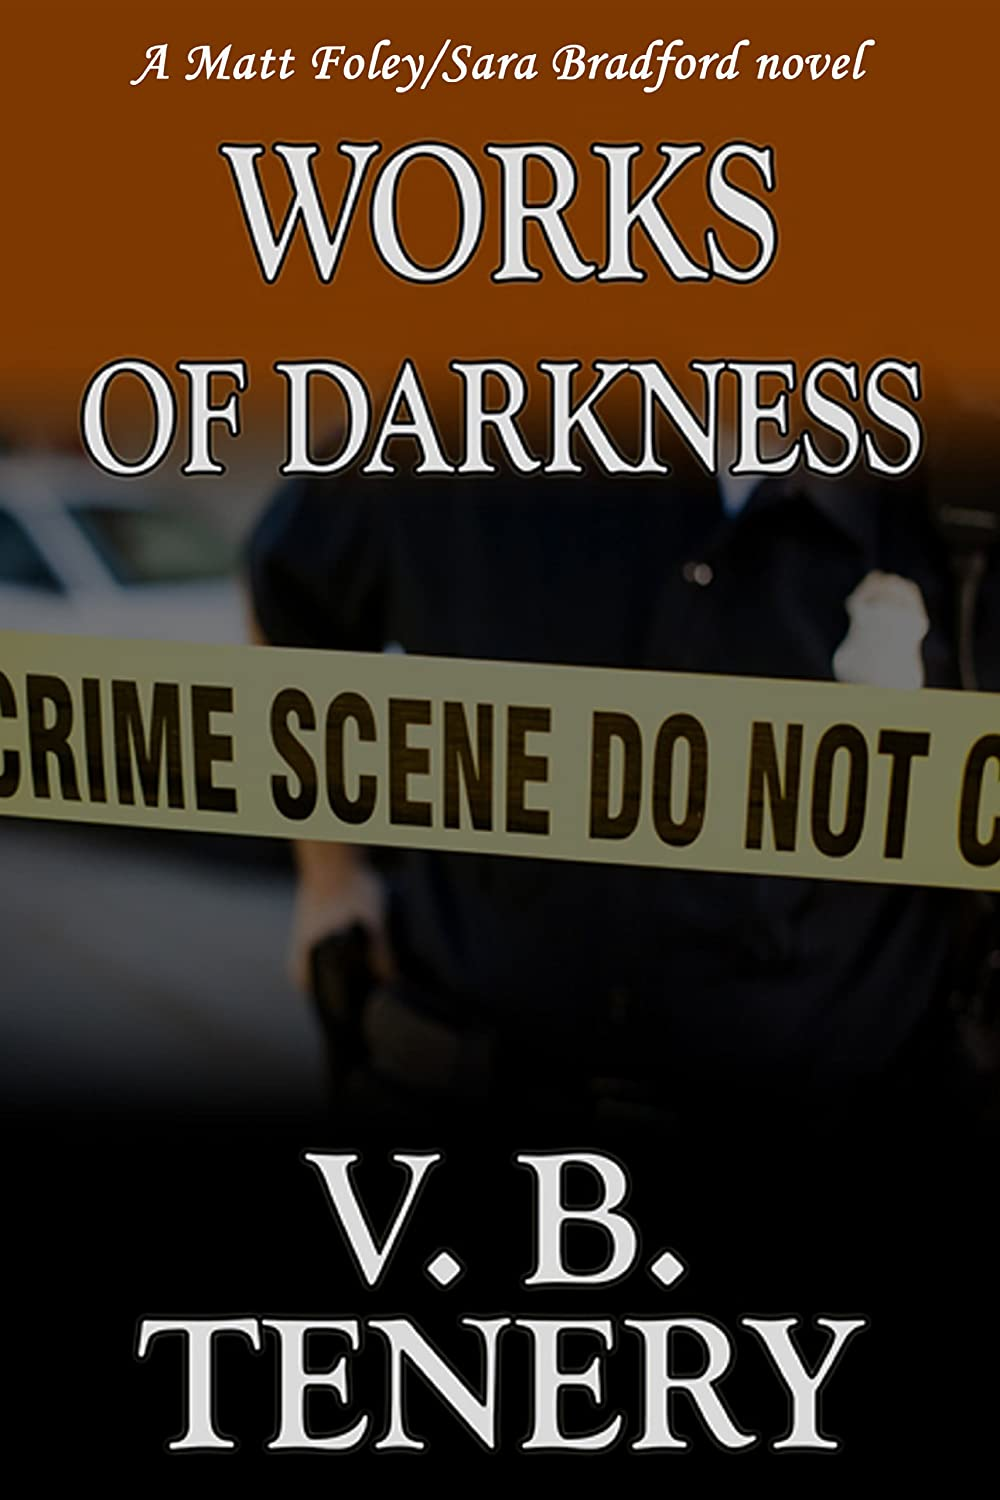 WorksofDarkness_ebook